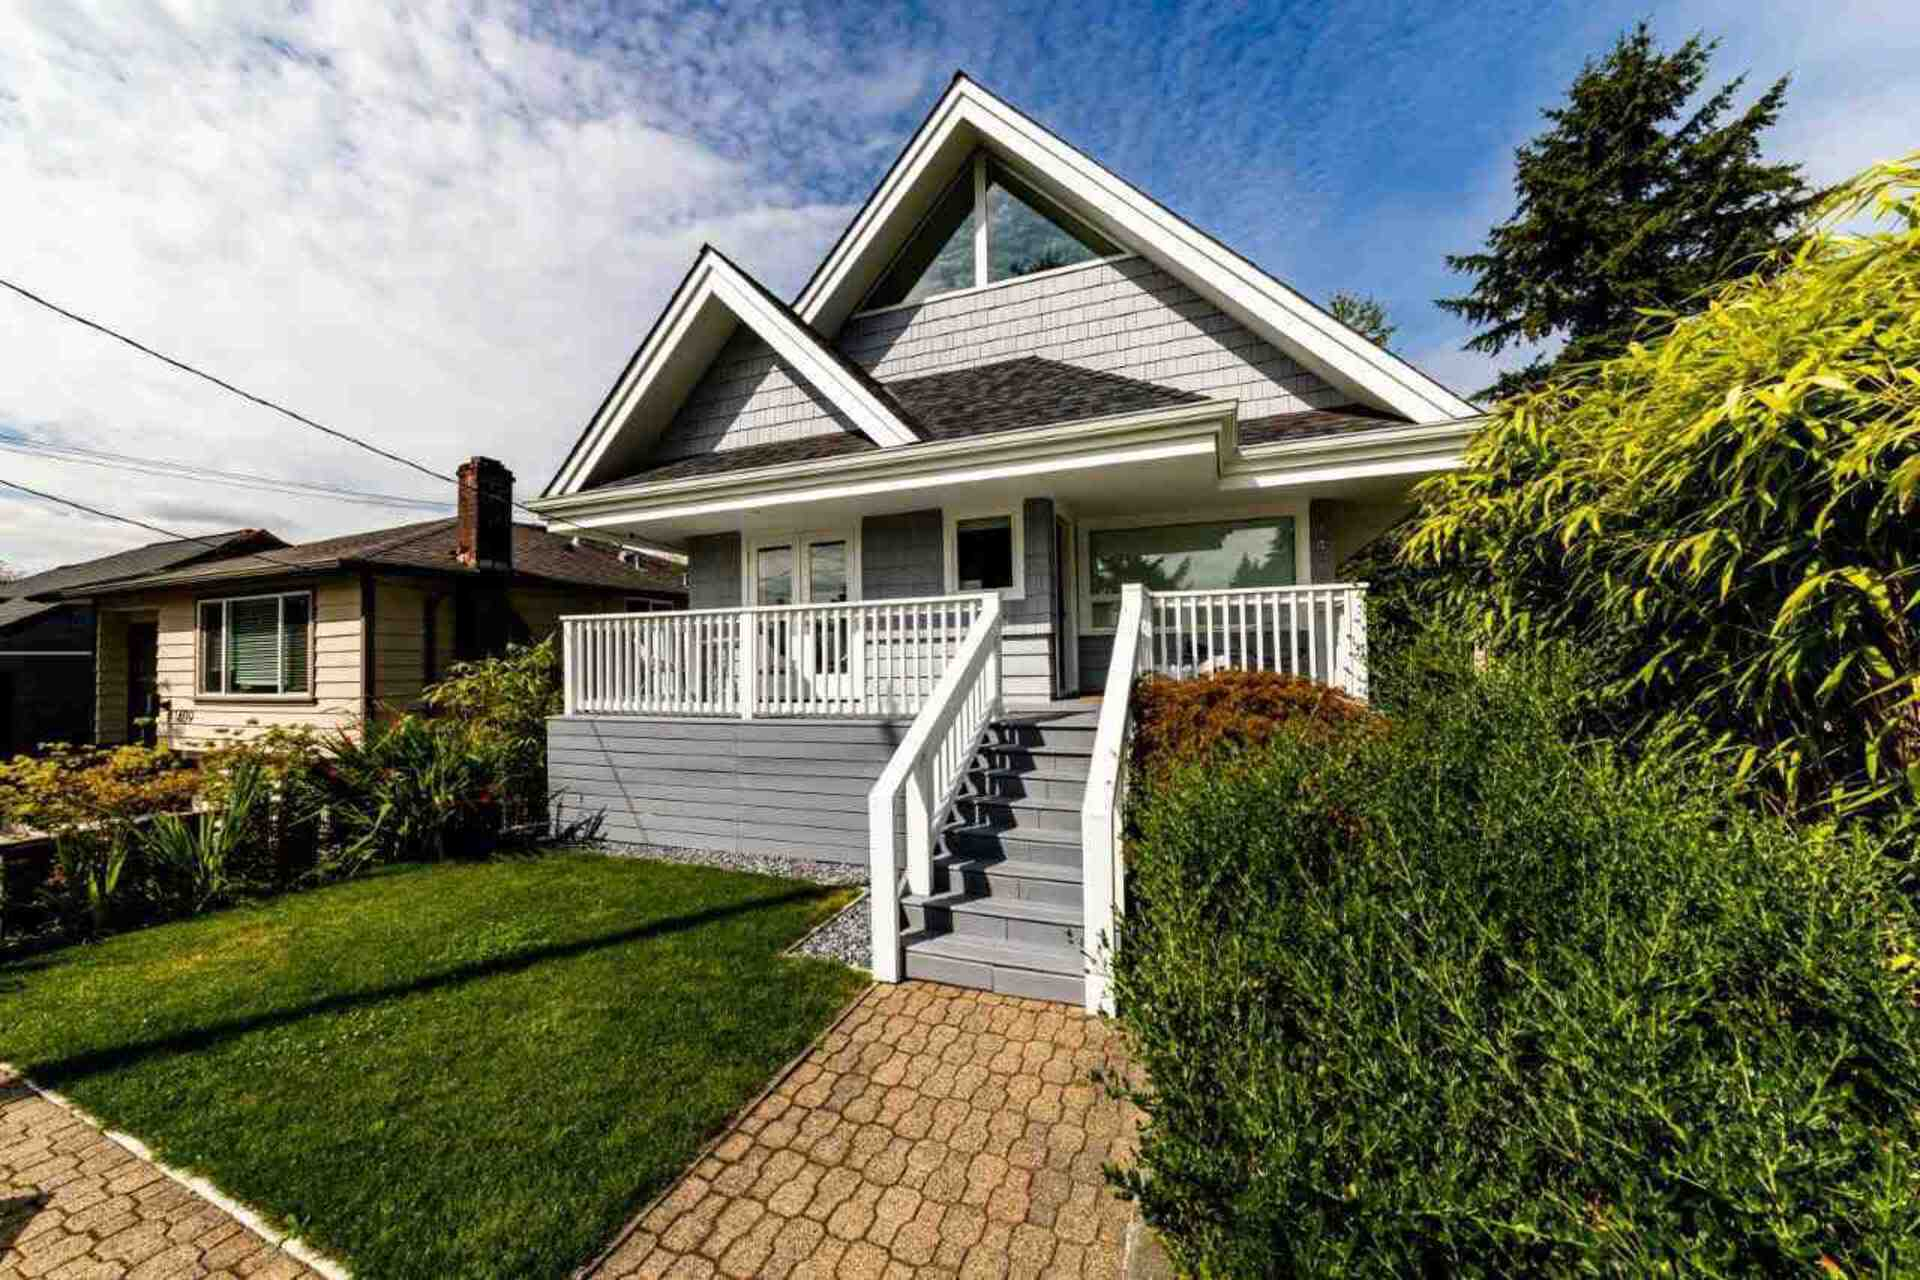 1425-william-avenue-boulevard-north-vancouver-01 at 1425 William Avenue, Boulevard, North Vancouver